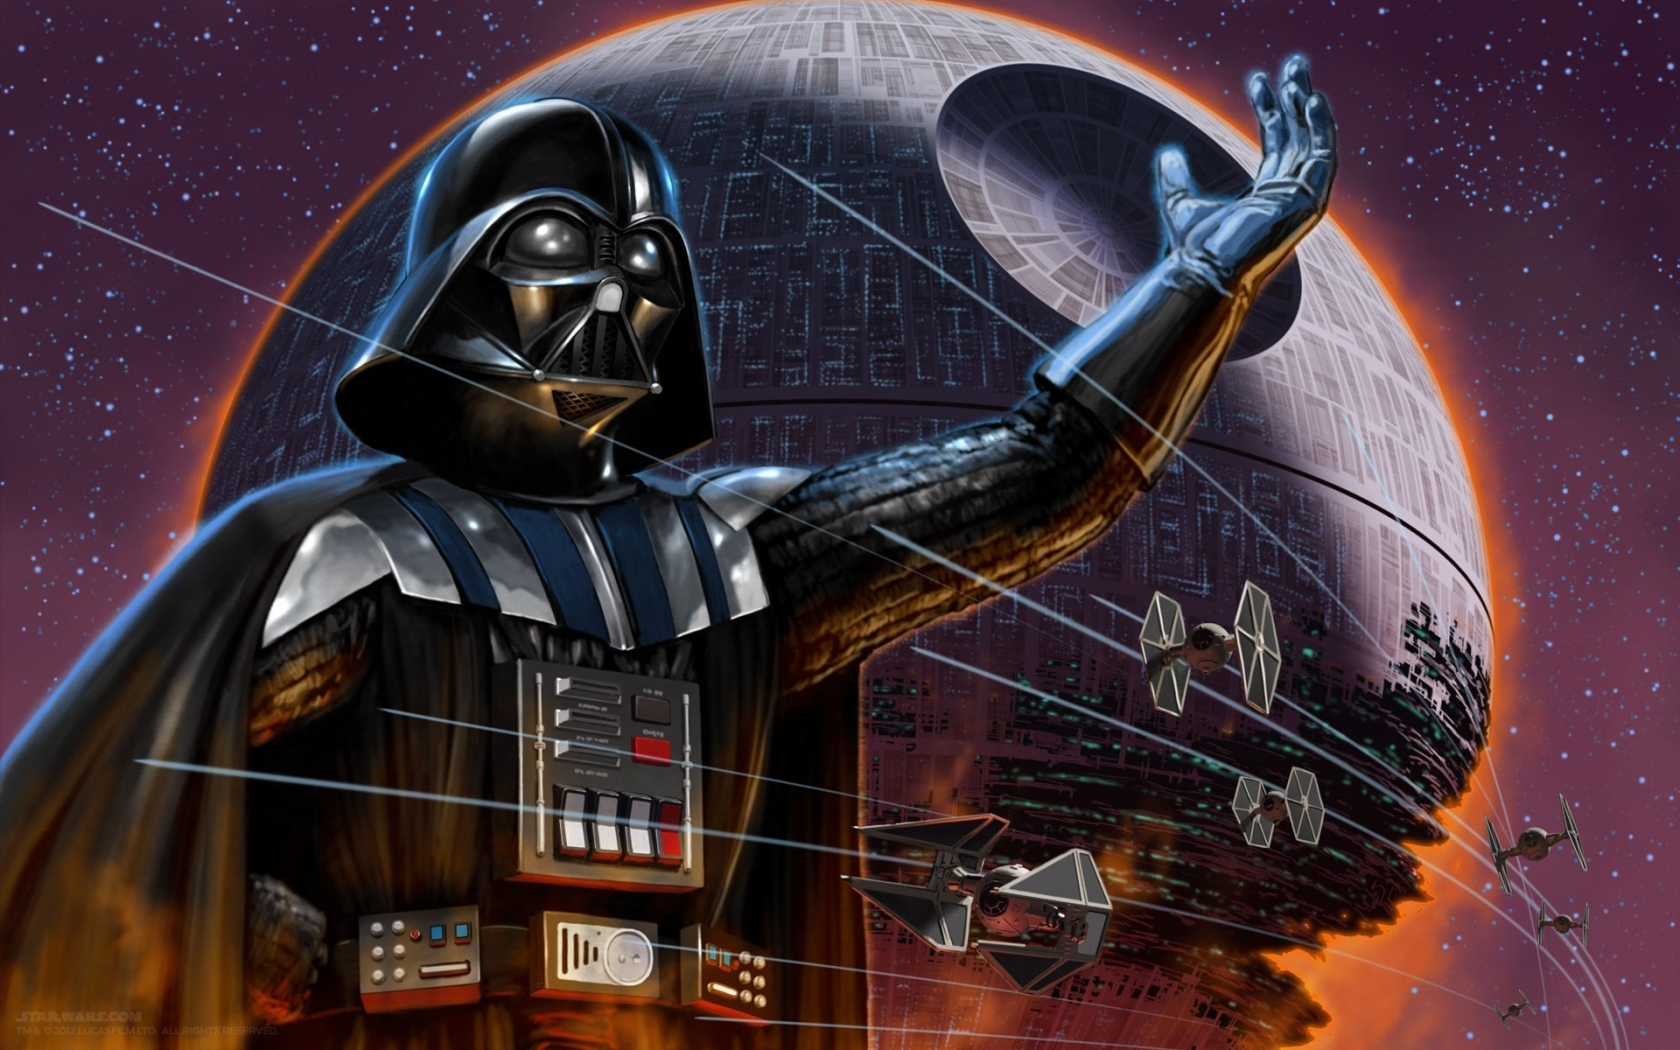 Darth Vader Star Wars Character for 1680 x 1050 widescreen resolution